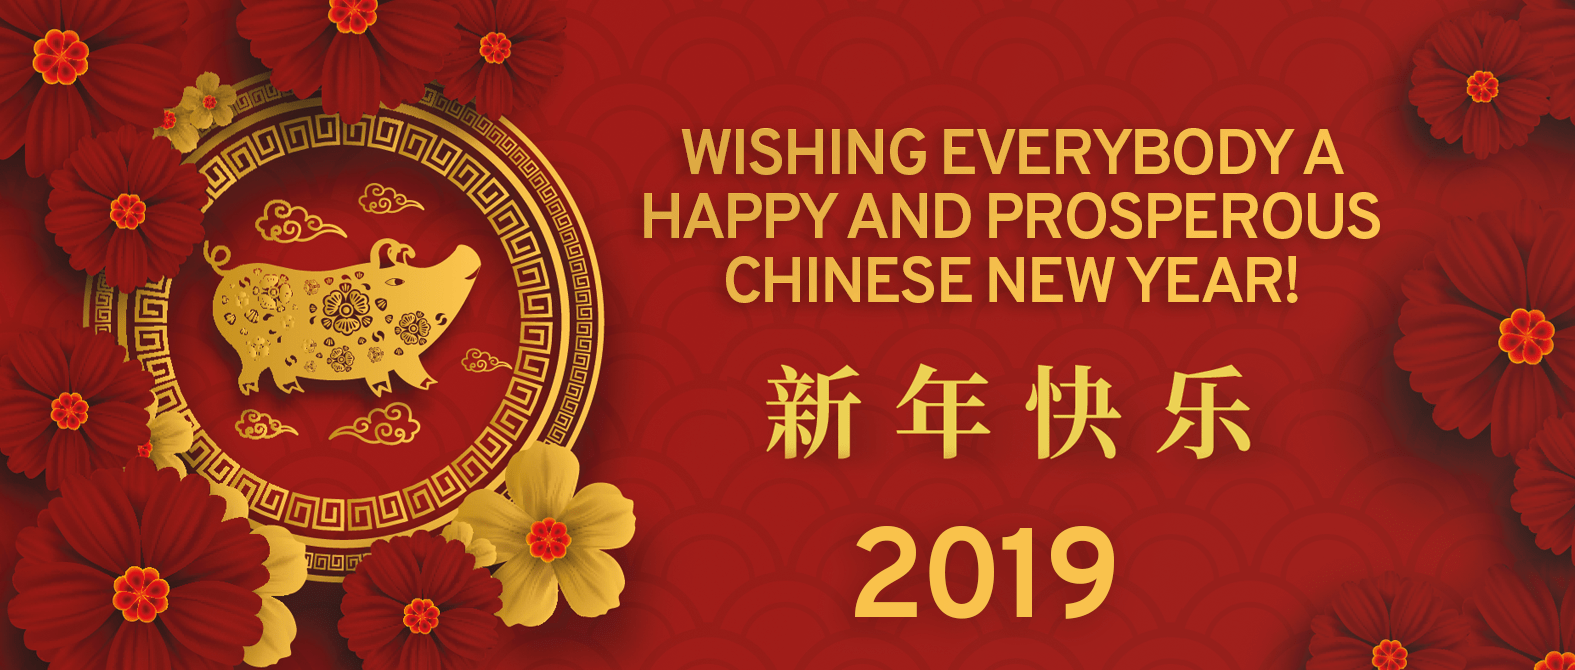 Wishing everybody a happy and prosperous Chinese New Year